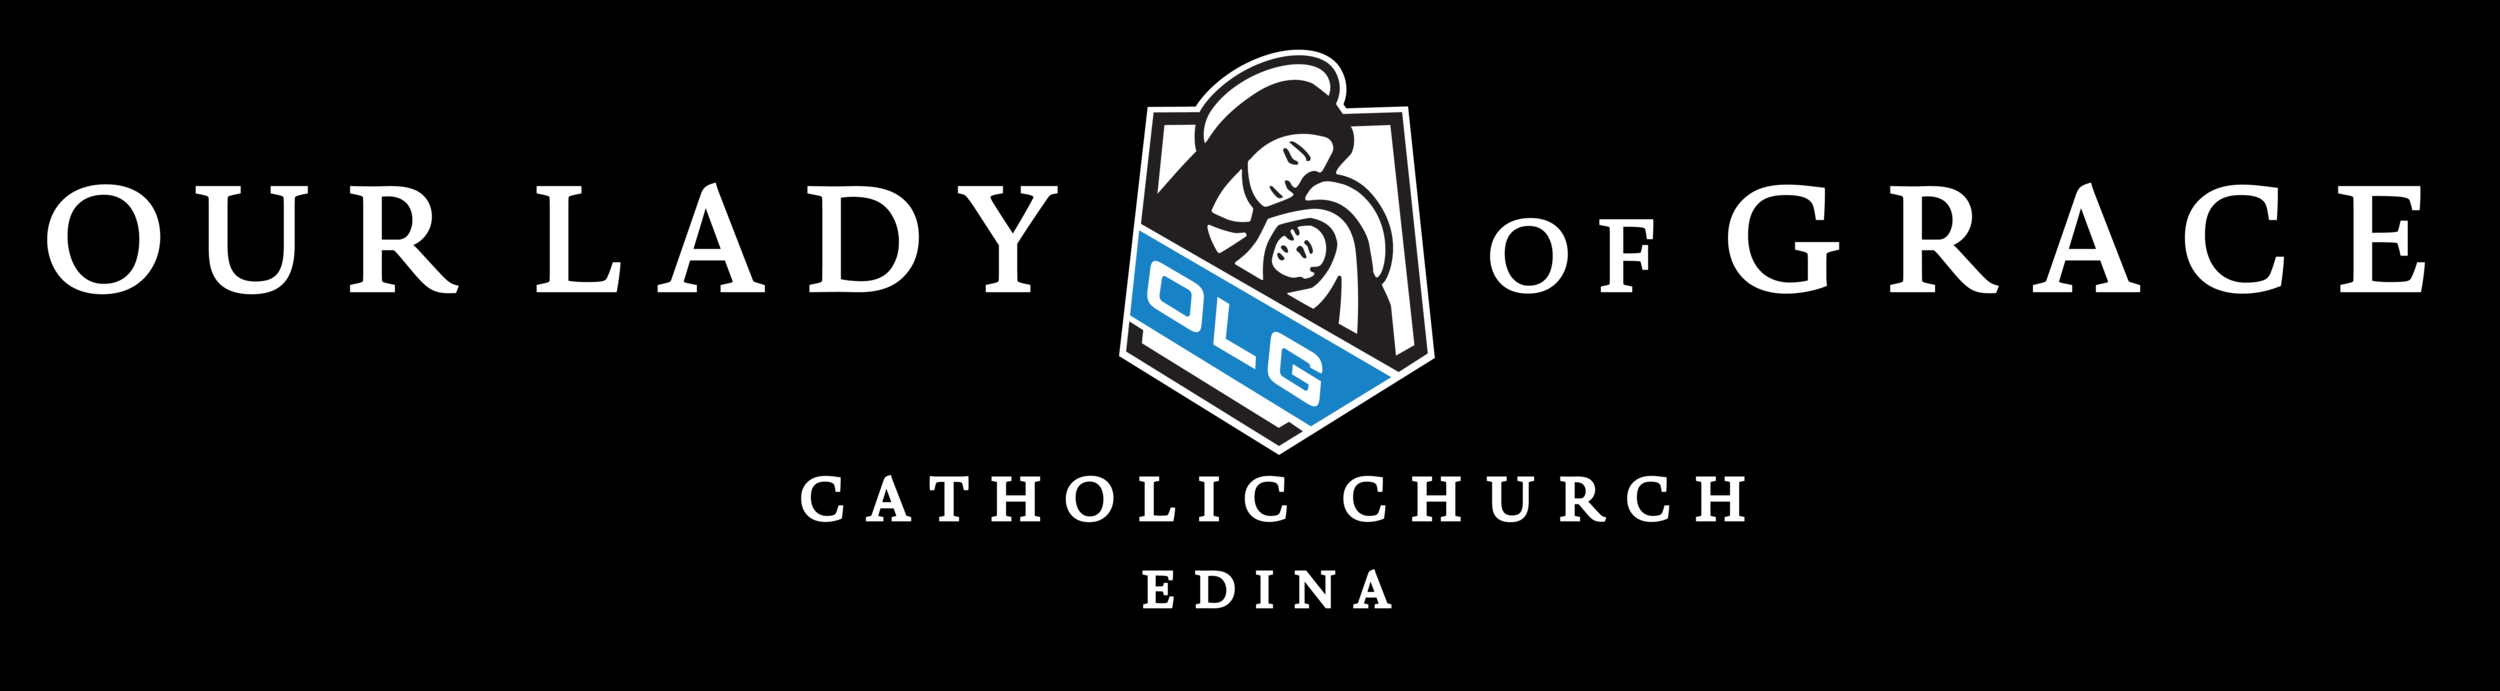 Example: OLG Parish Logo WHITE Text (Catholic Church Edina).png